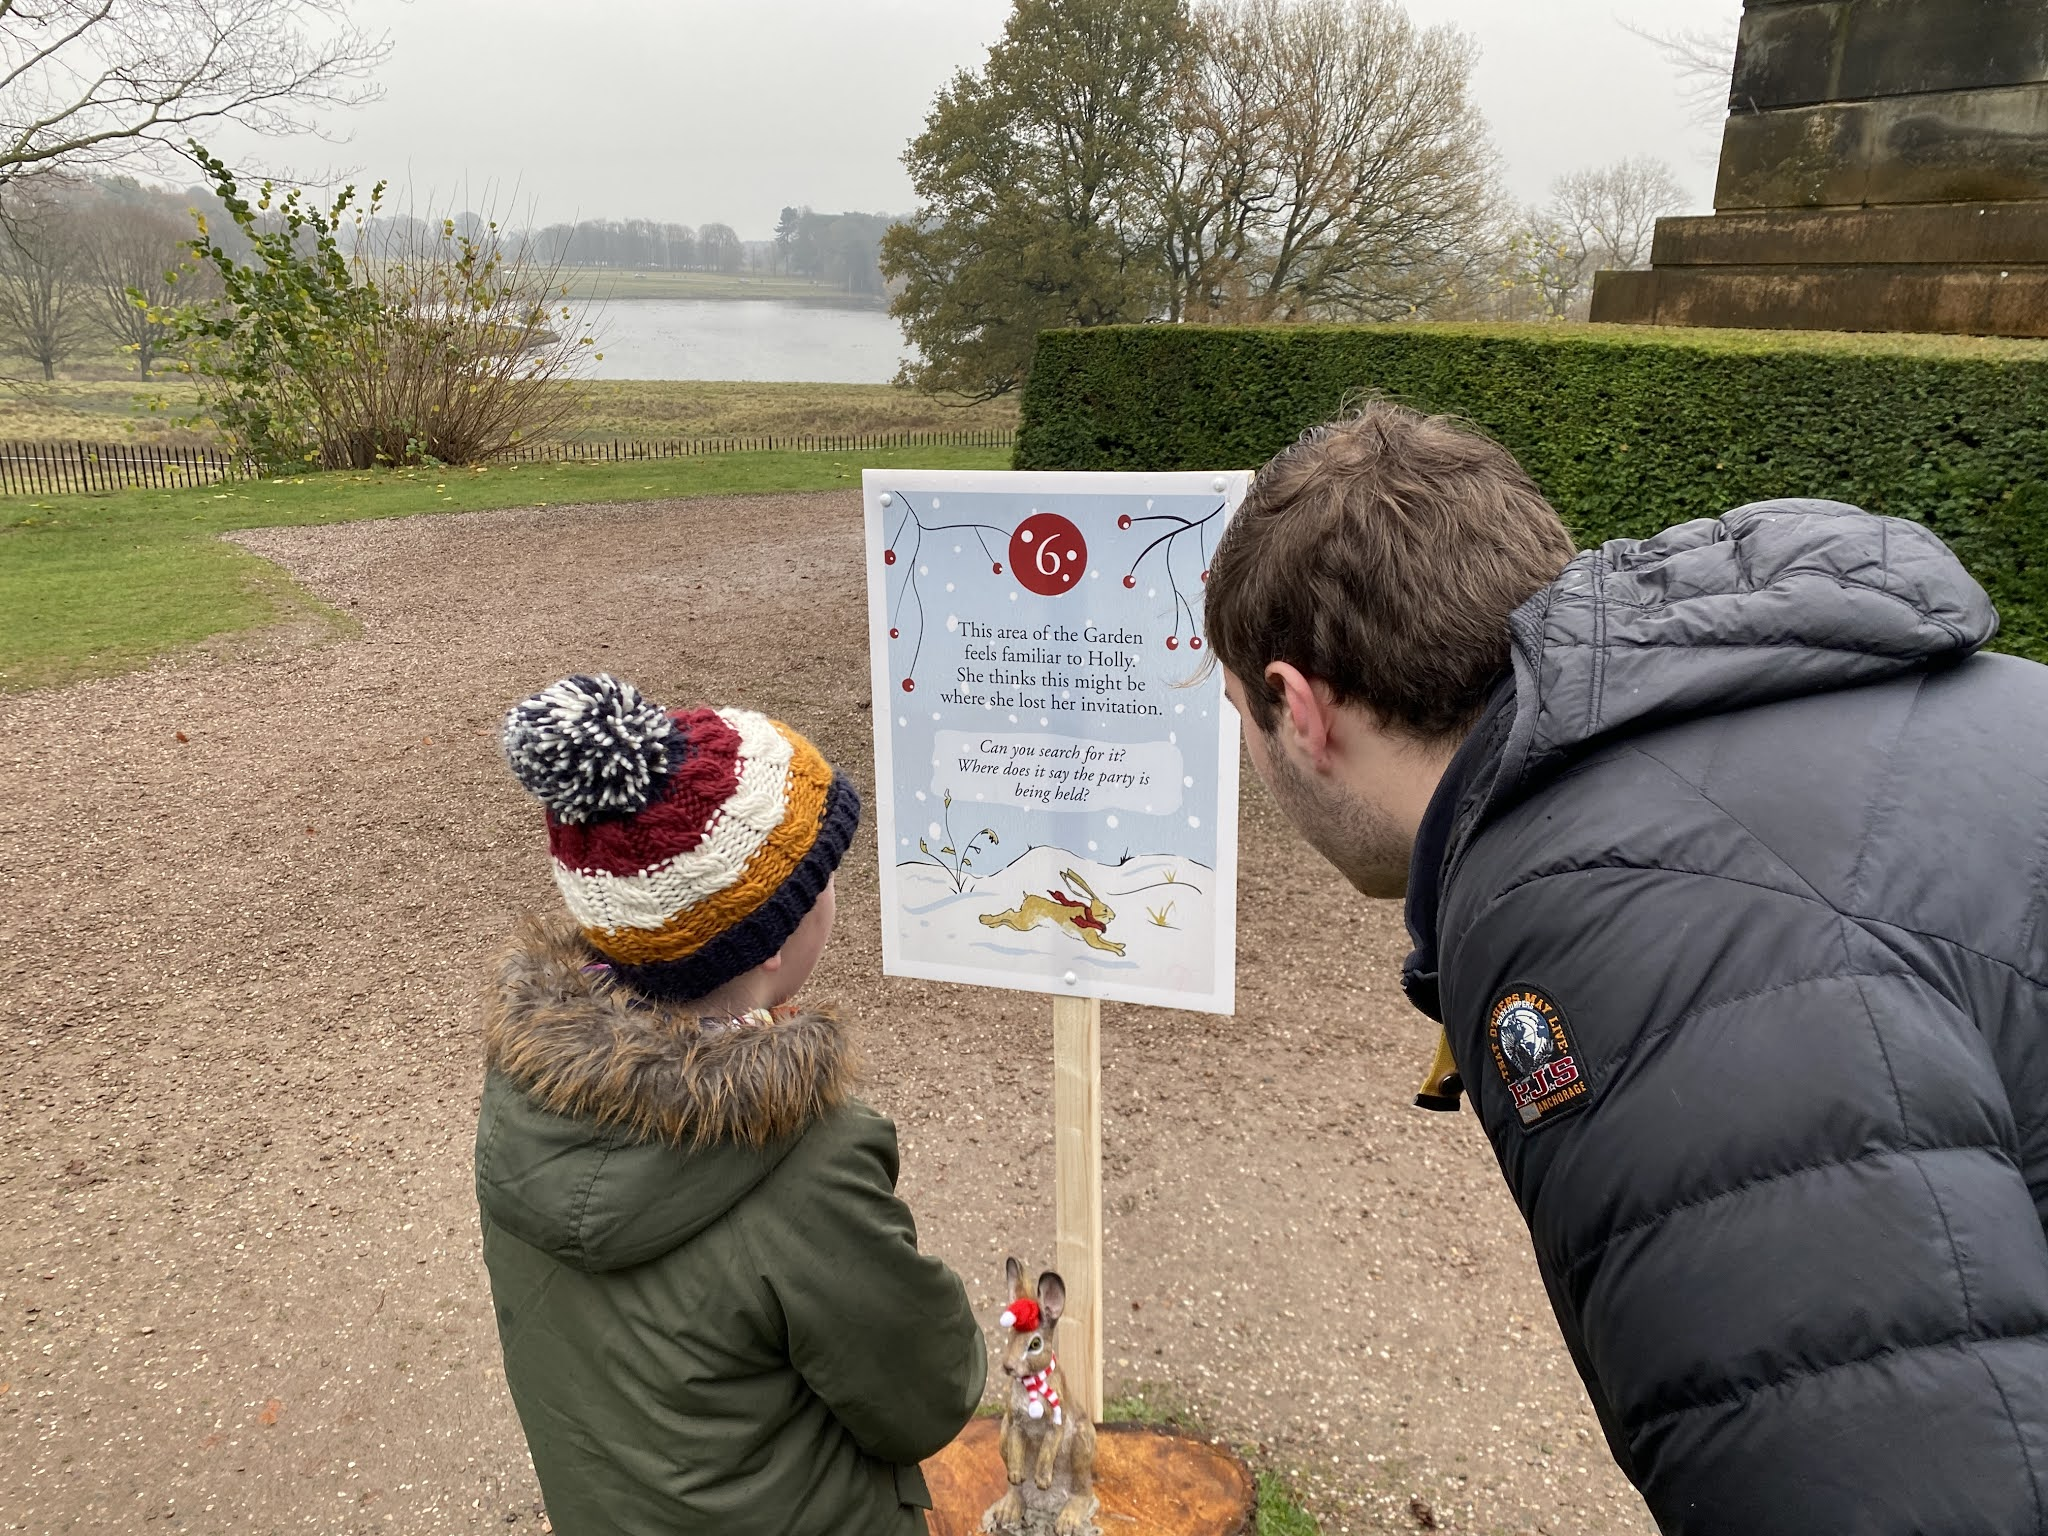 Two boys looking at a clue